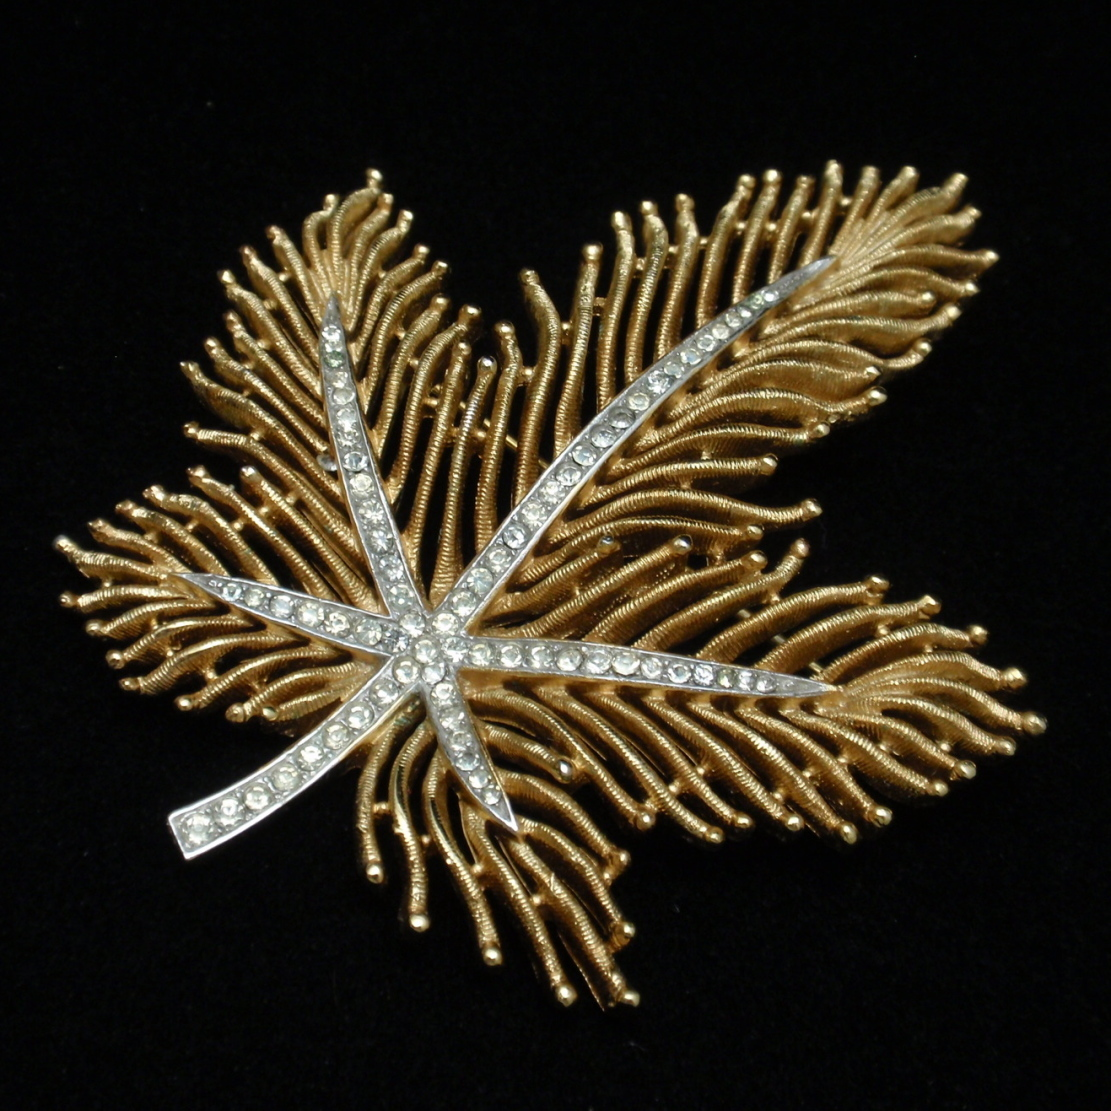 Trifari Gold Tone Leaf Pin with Clear Rhinestone Accents